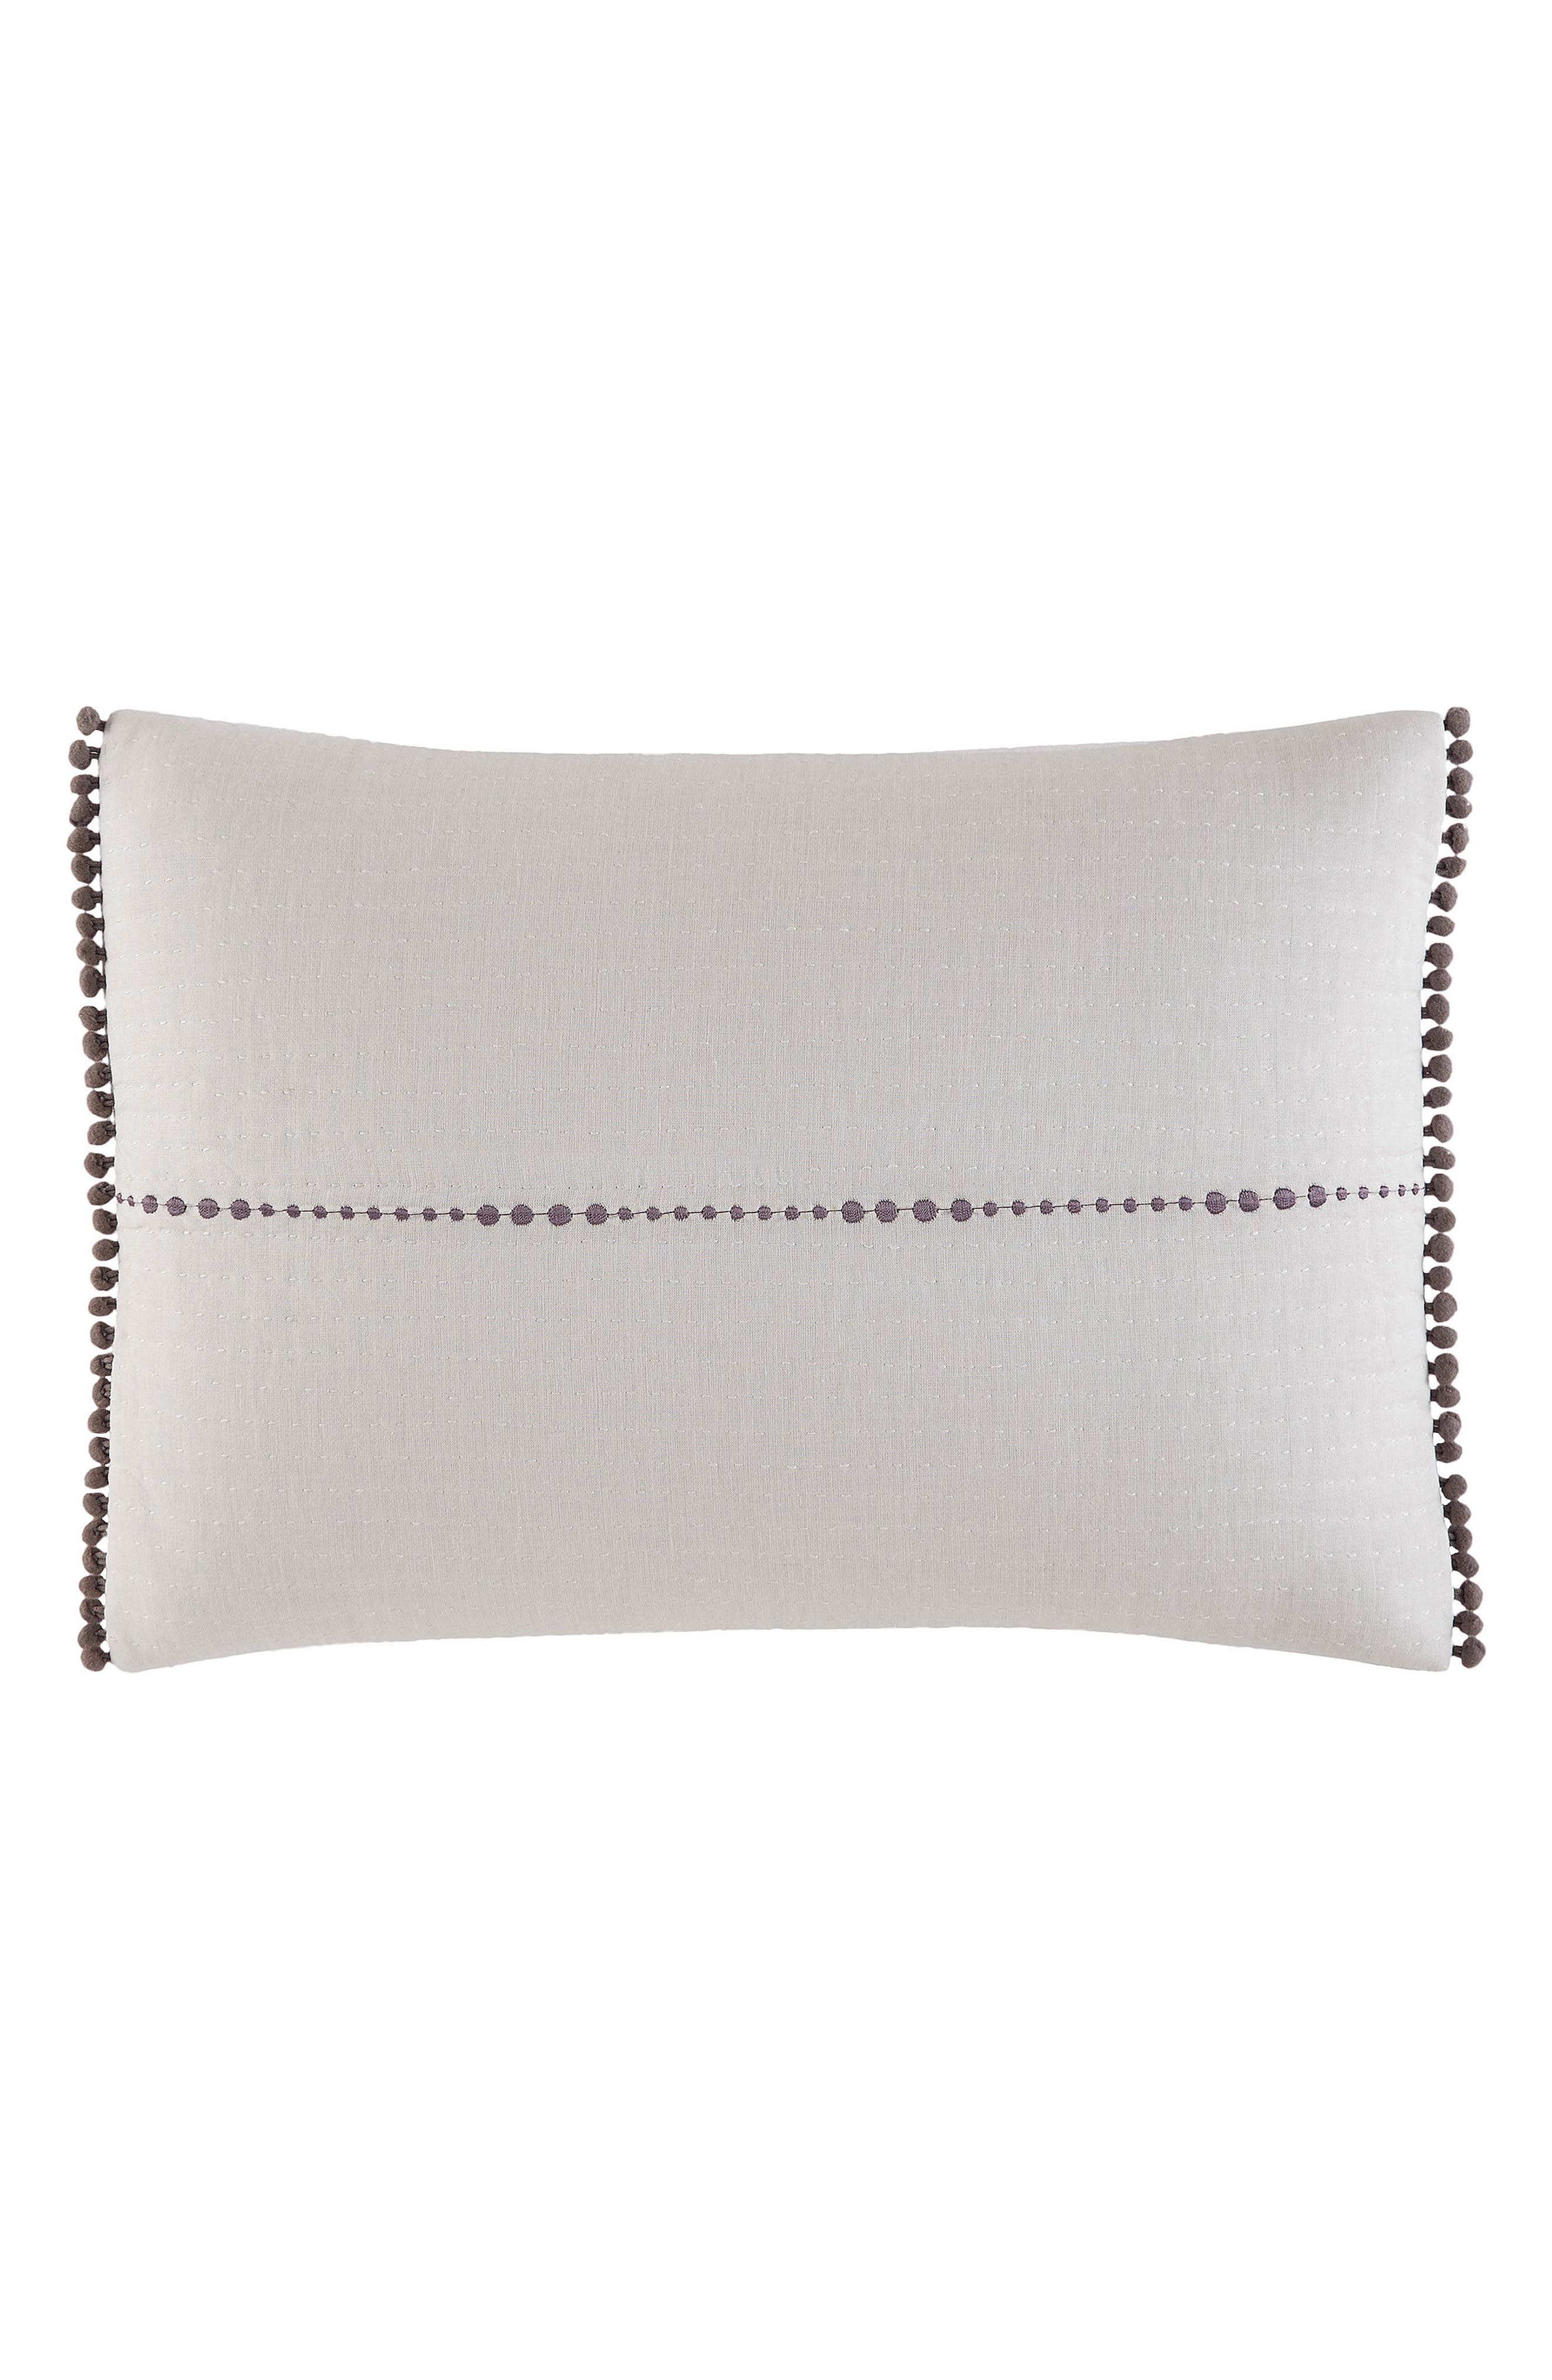 Greystone Accent Pillow,                         Main,                         color, WHITE